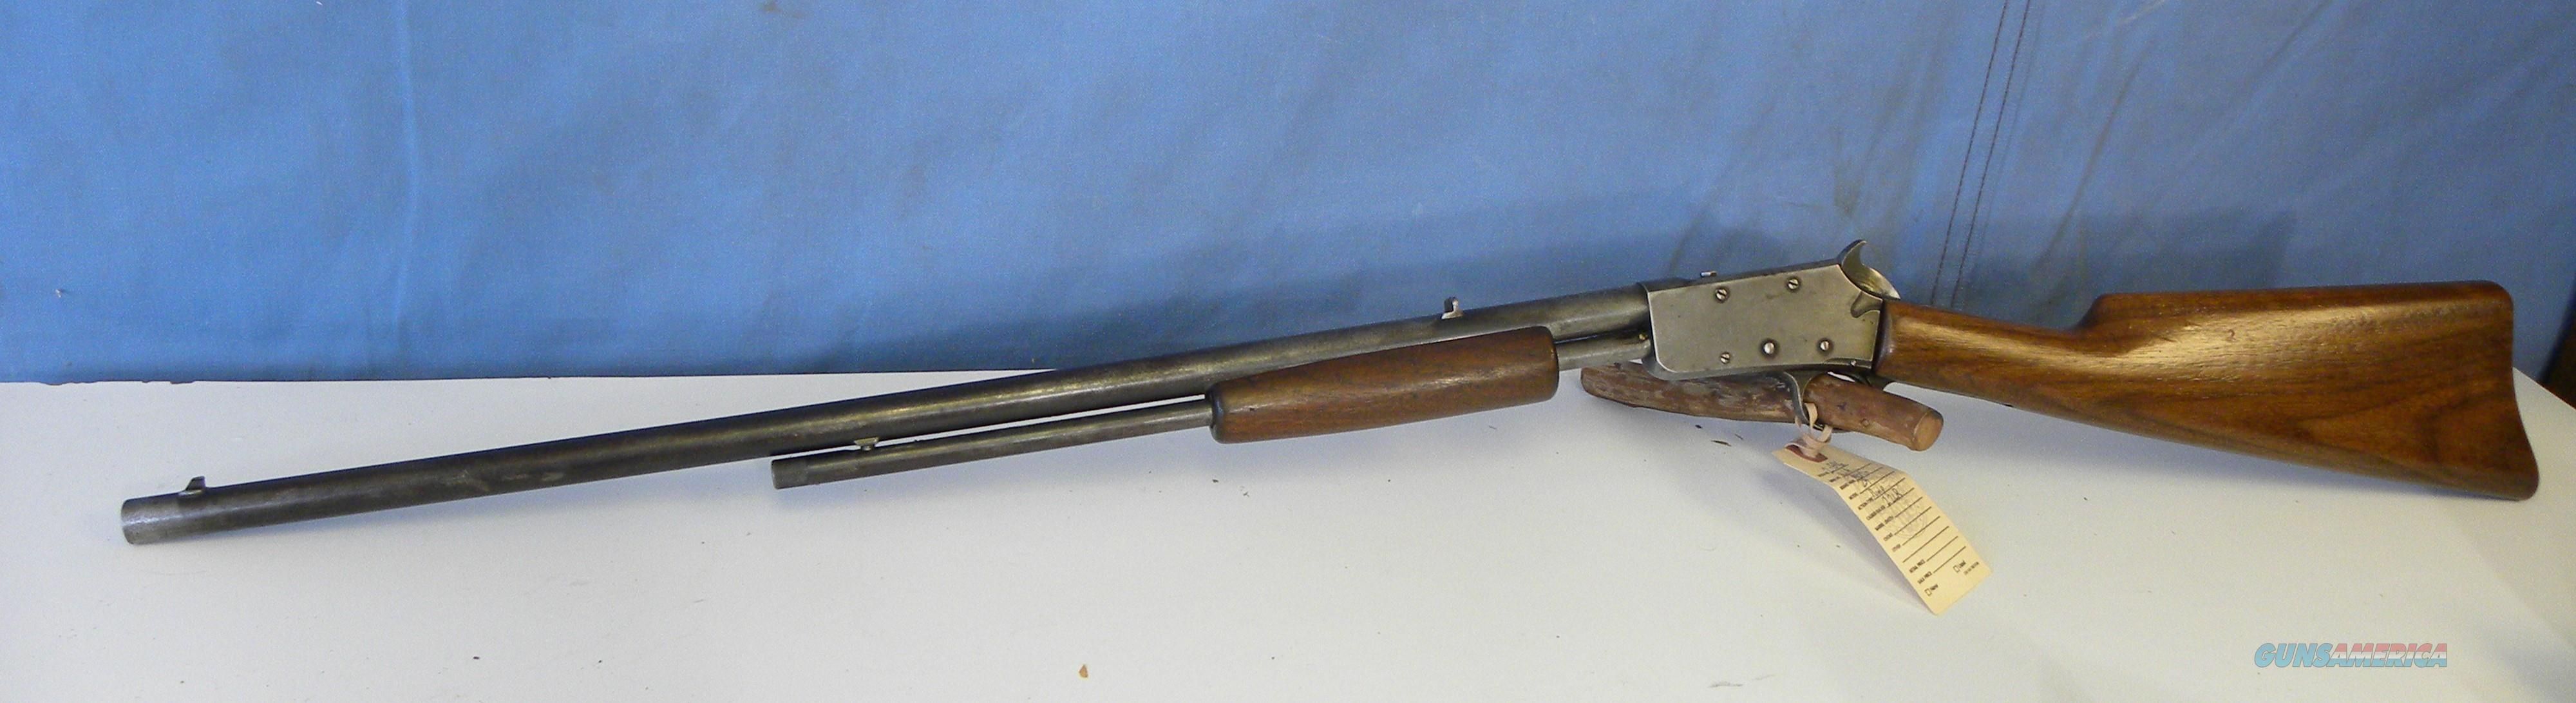 Marlin Model 29  Guns > Rifles > Marlin Rifles > Modern > Bolt/Pump